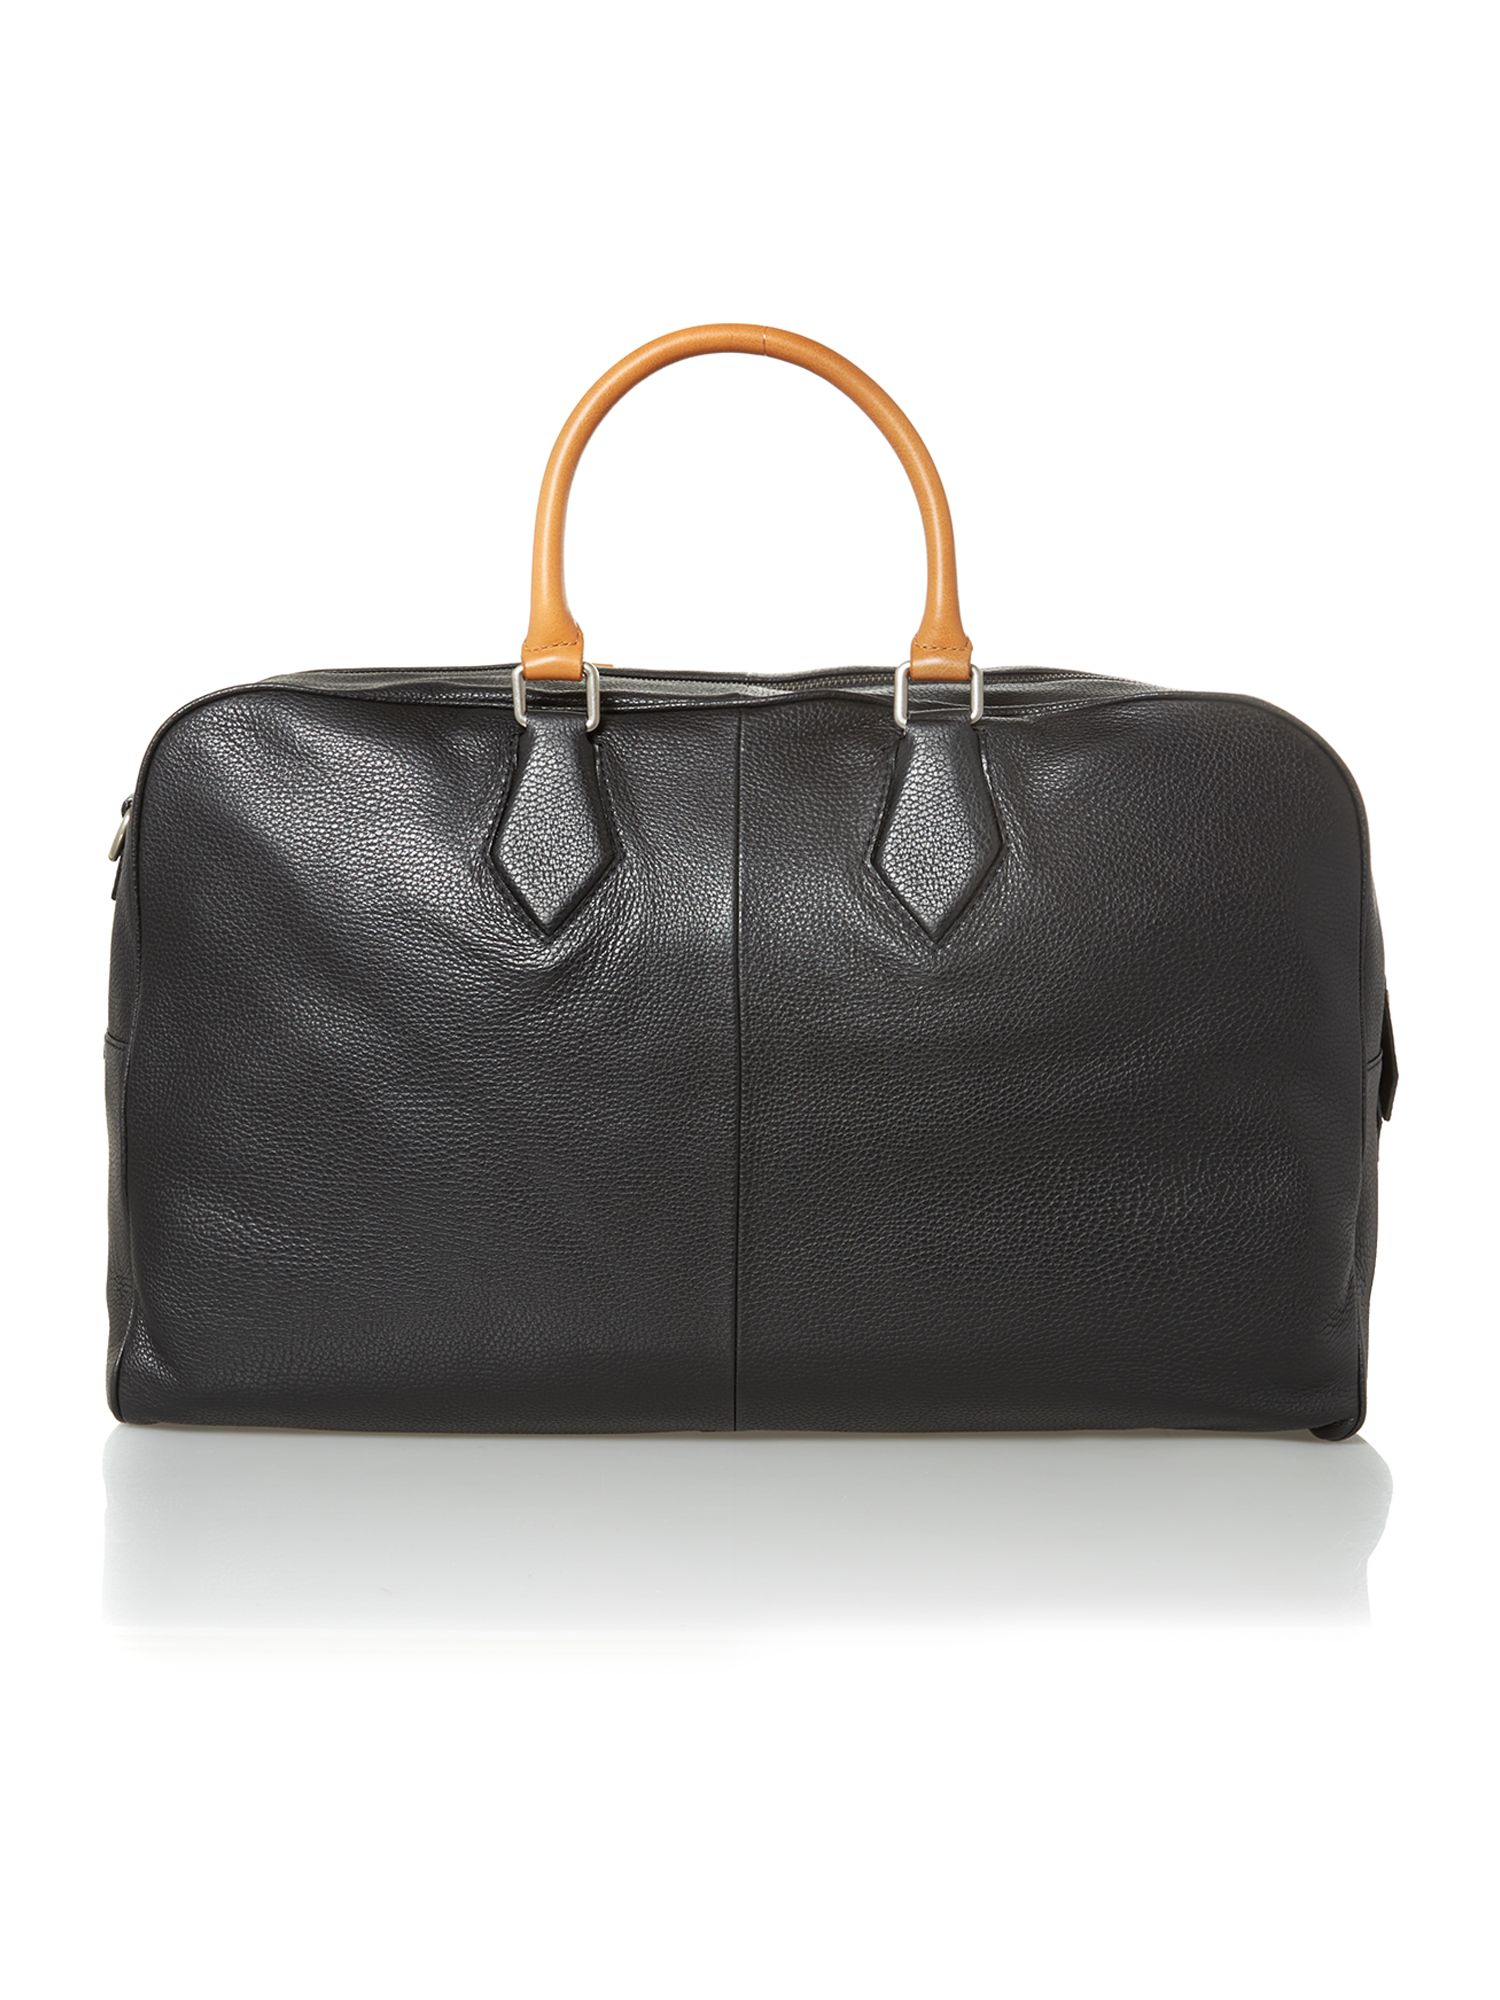 Leather orb weekender bag